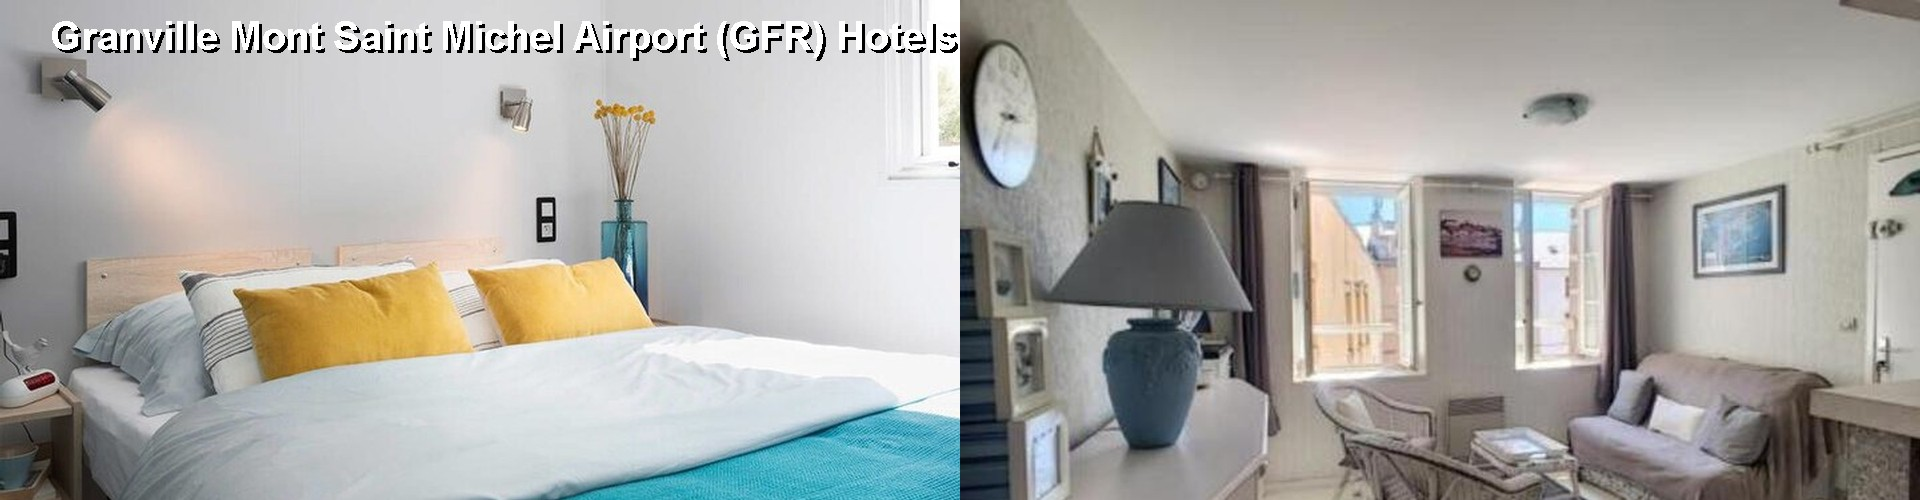 5 Best Hotels near Granville Mont Saint Michel Airport (GFR)